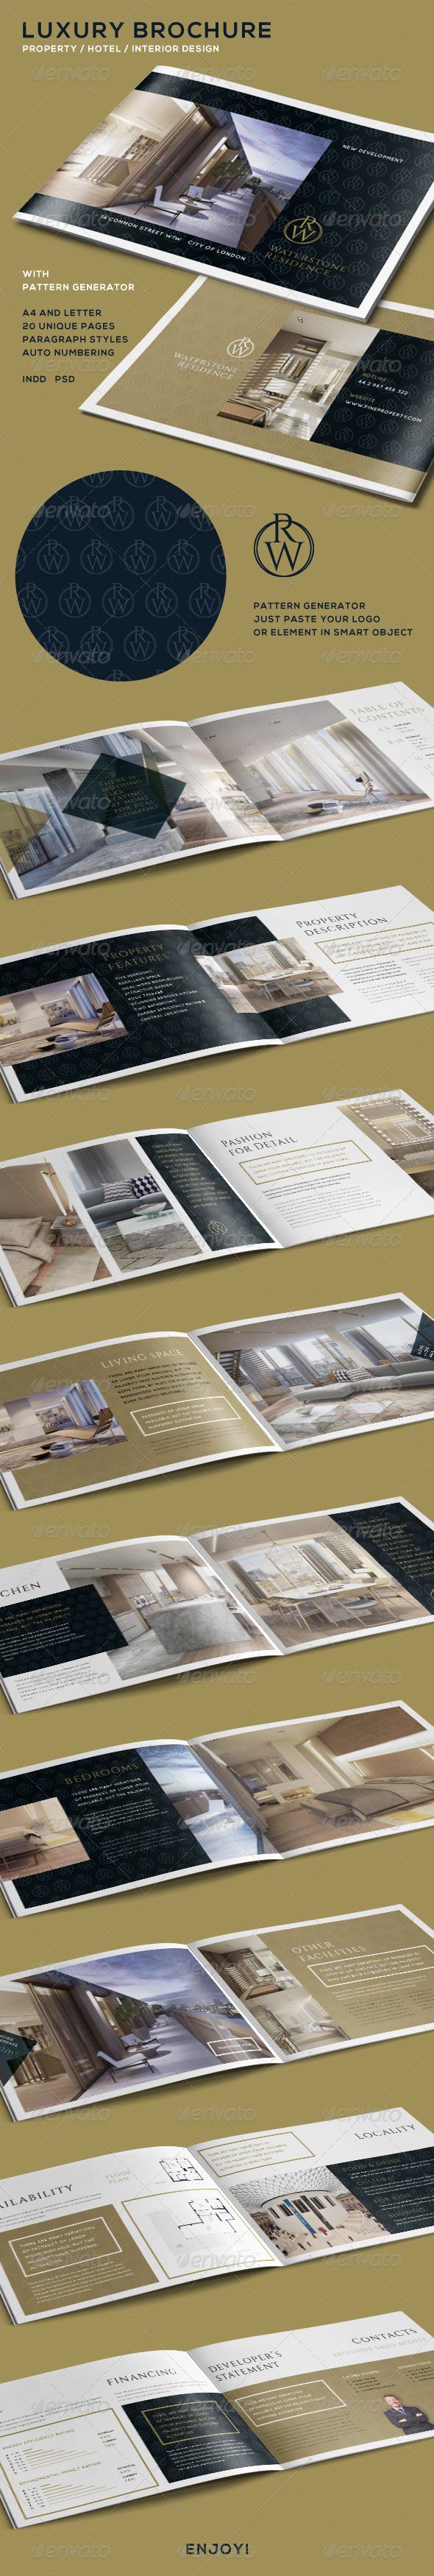 GraphicRiver Luxury Brochure for Property Hotel Interior 7973509